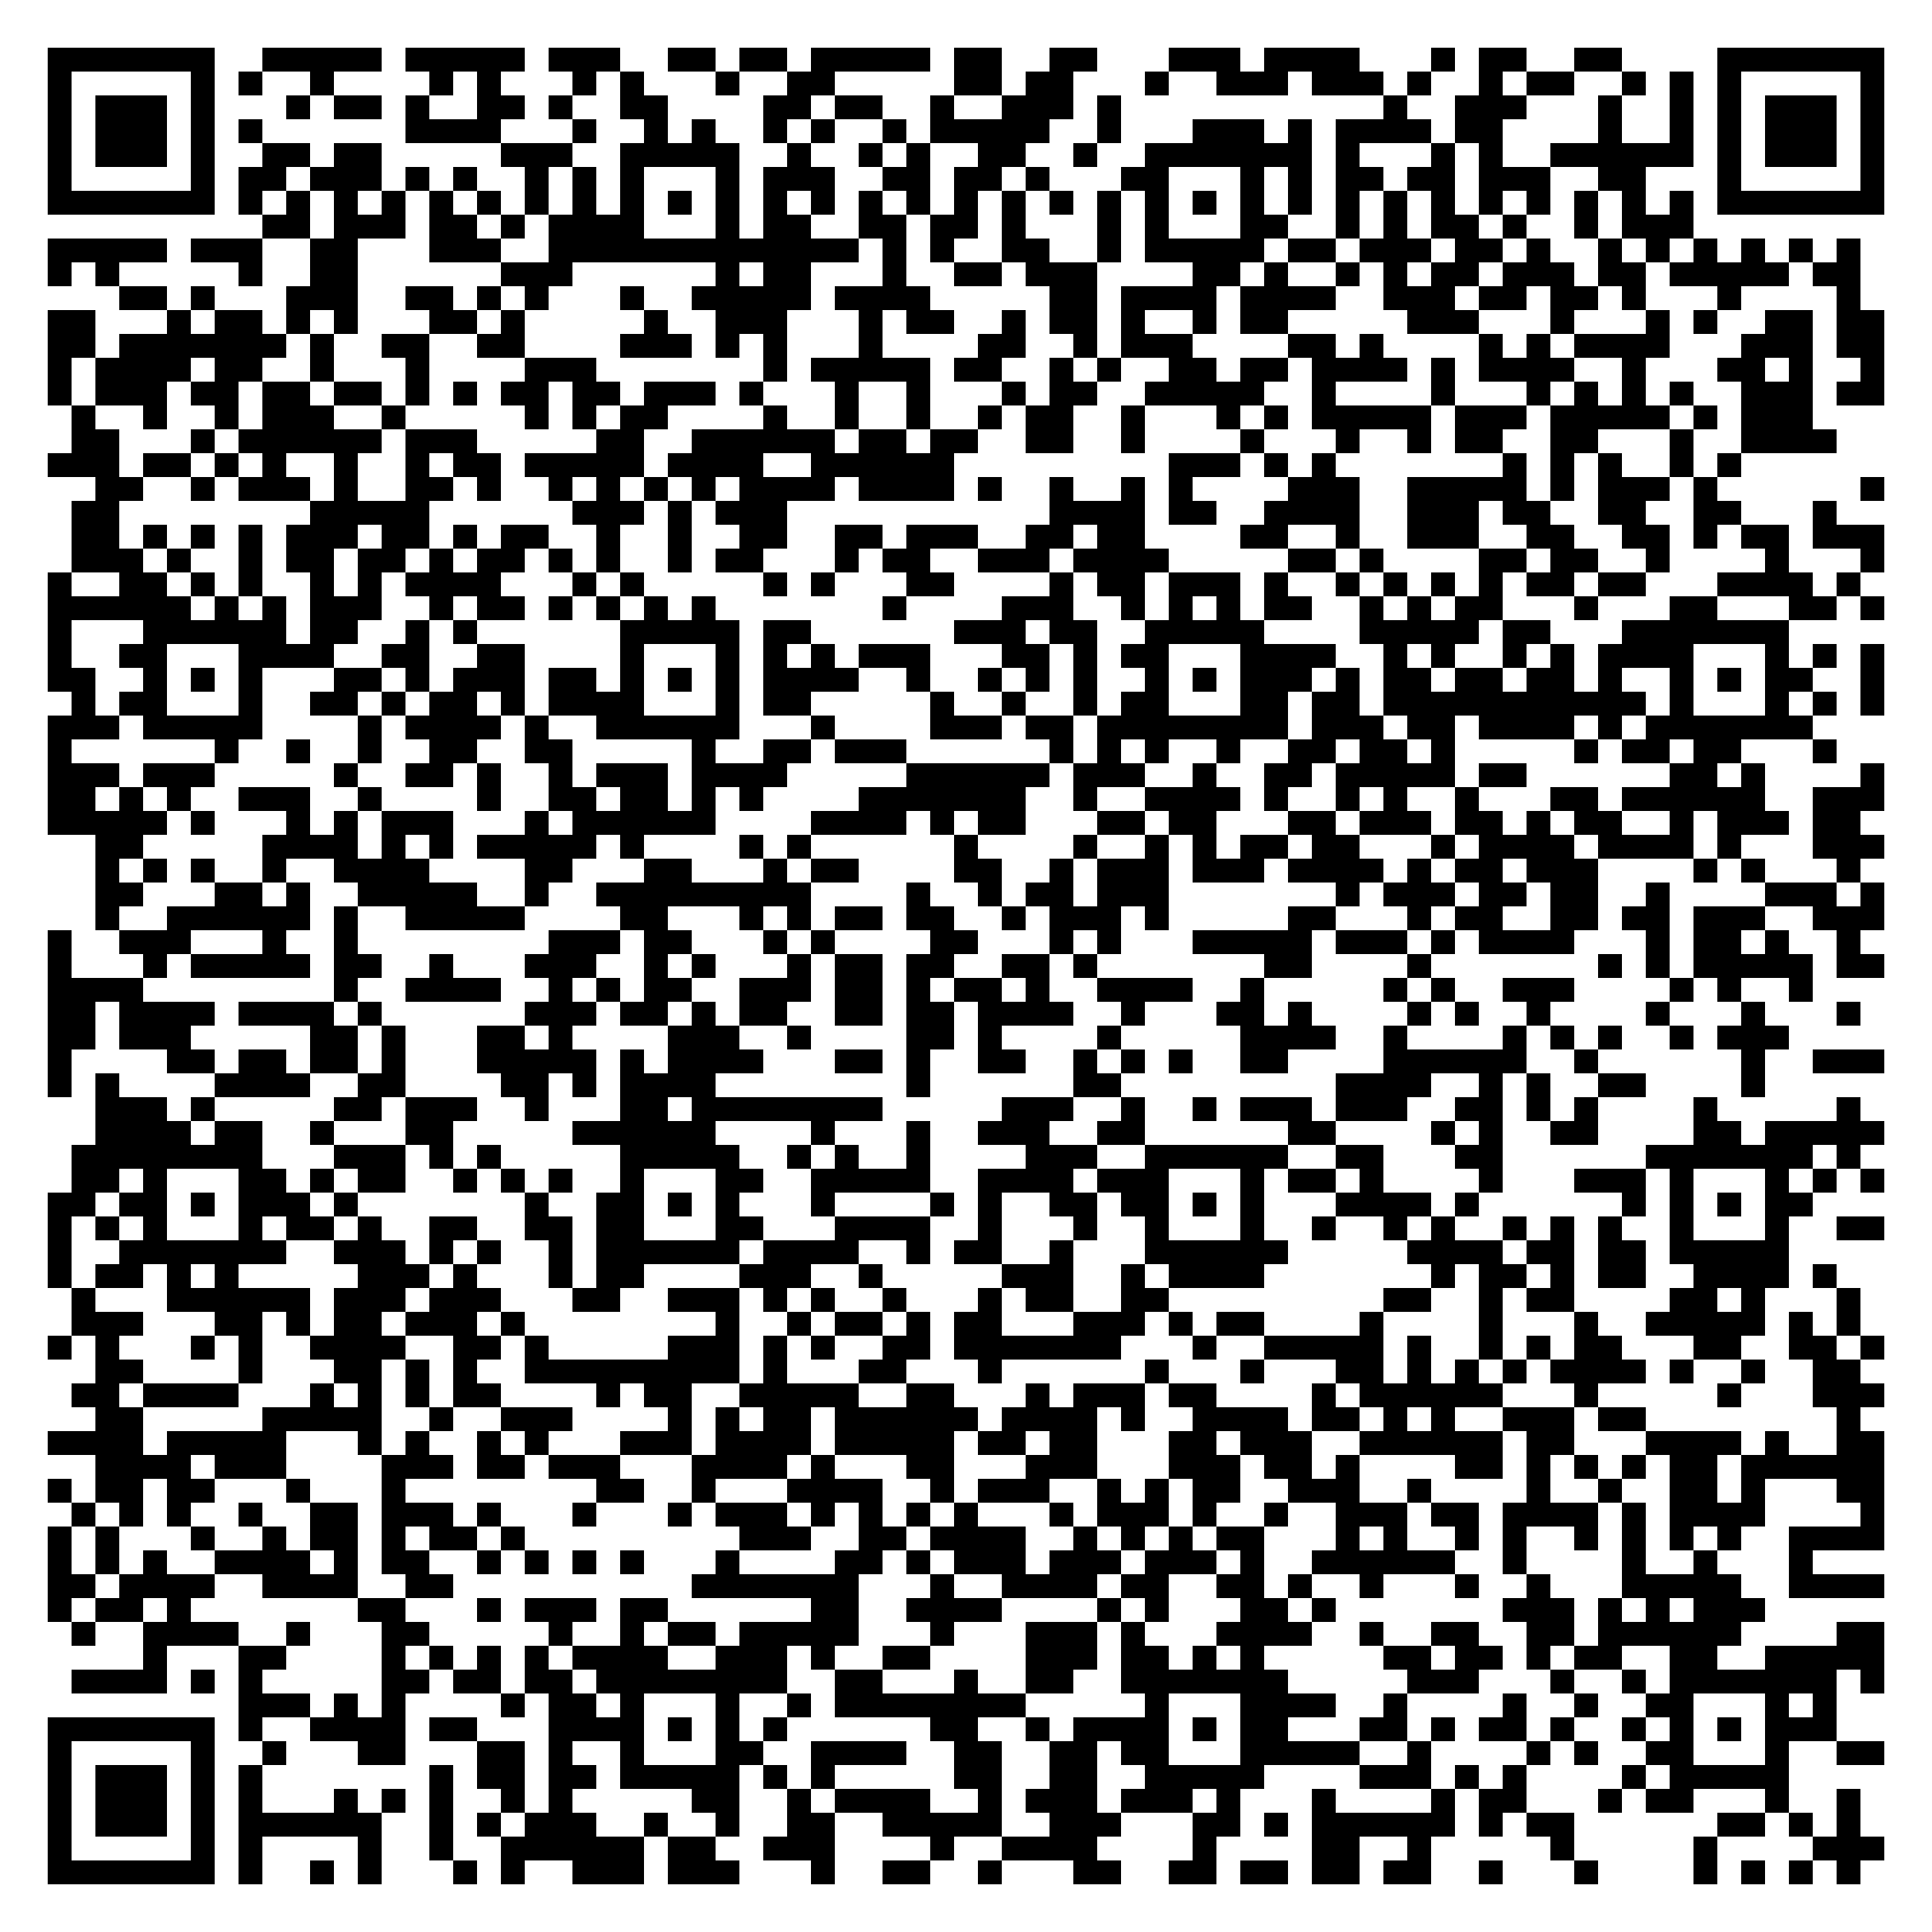 qrcode nadine cremers